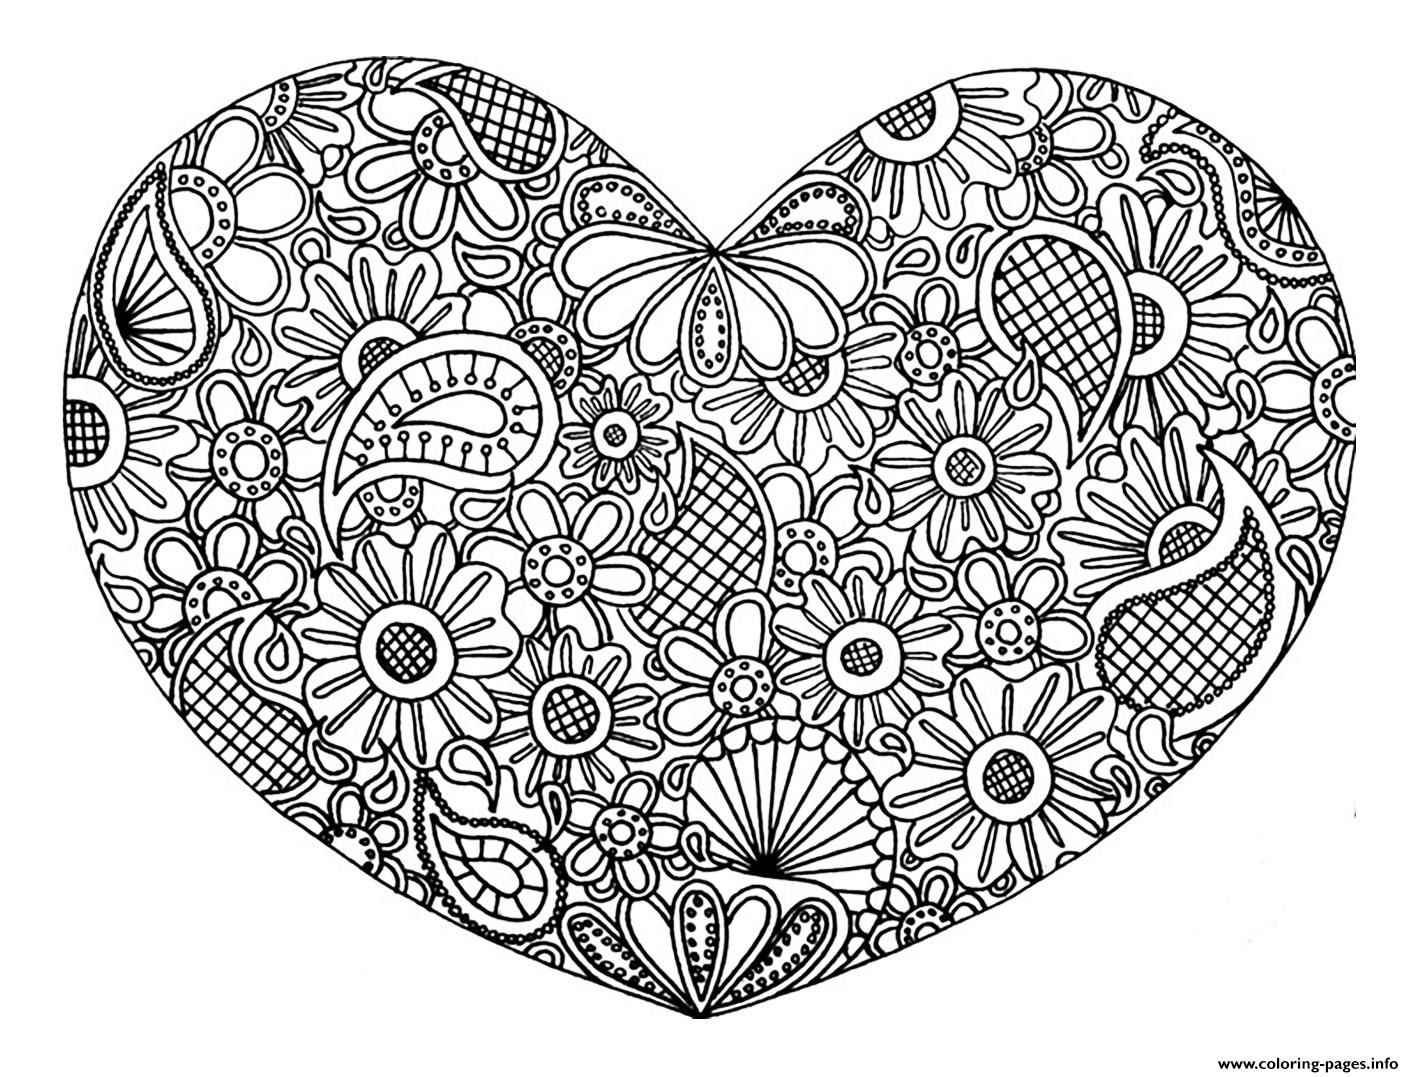 Adult Coloring Pages Entrancing Adults Coloring Pages Free Printable Design Decoration